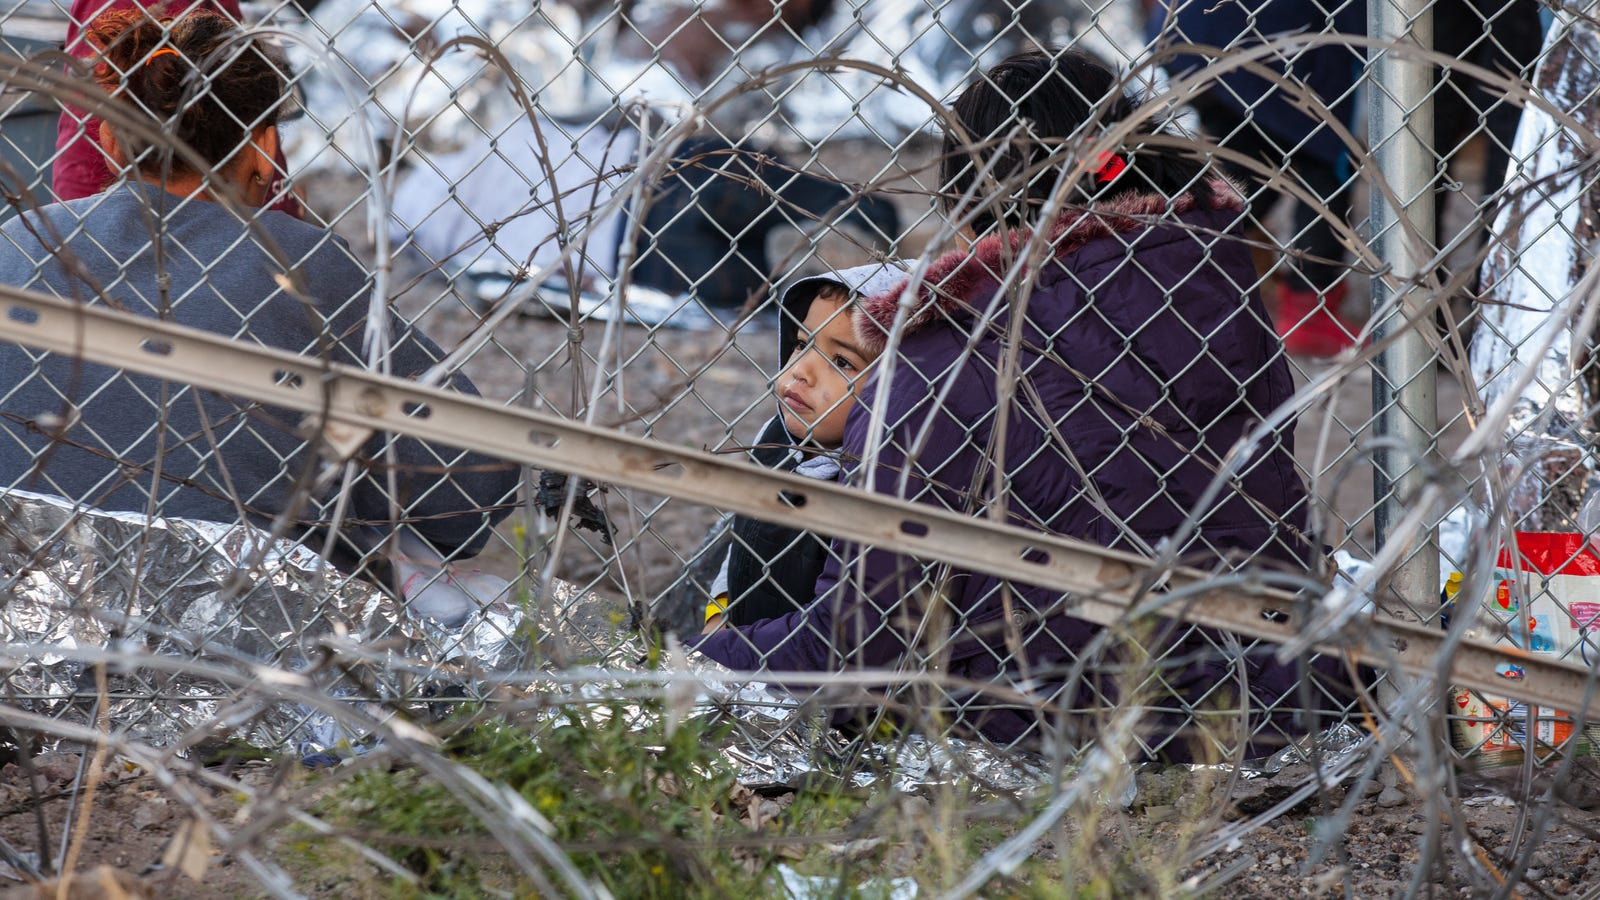 Wayfair CEO Refuses To Stop Furnishing Concentration Camps